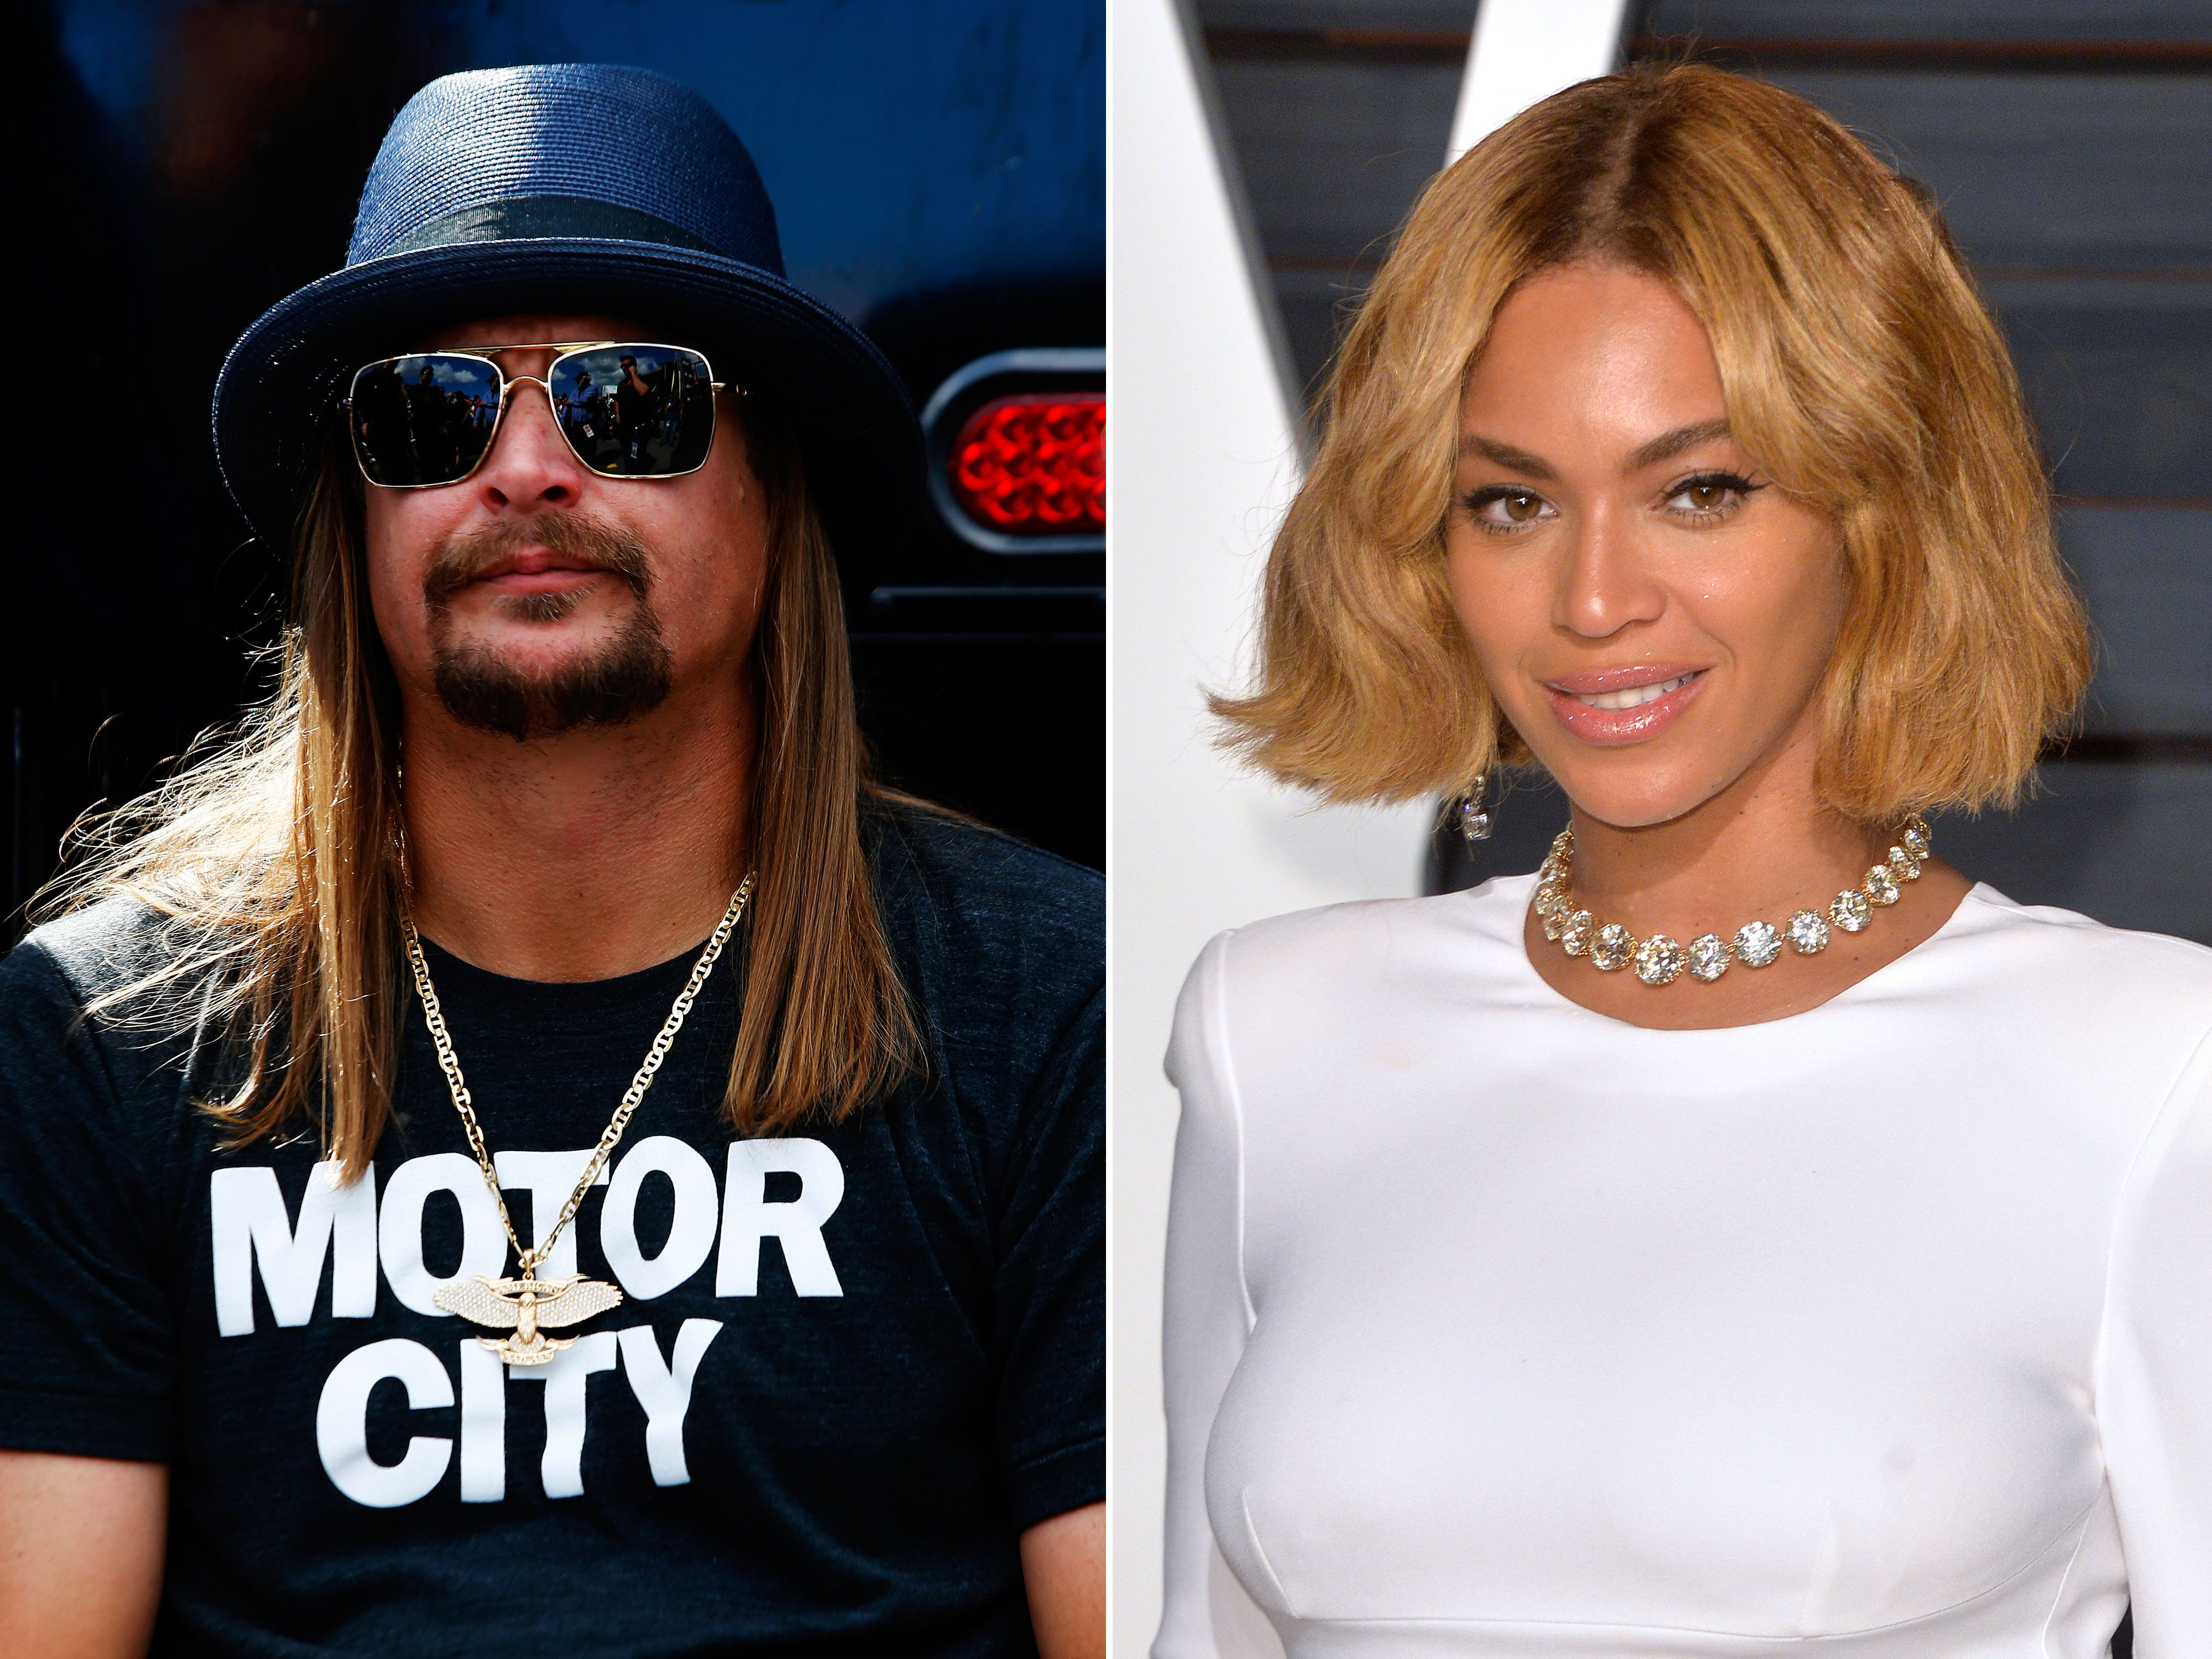 Kid Rock Fires Back at the Beyhive With a Can of Raid